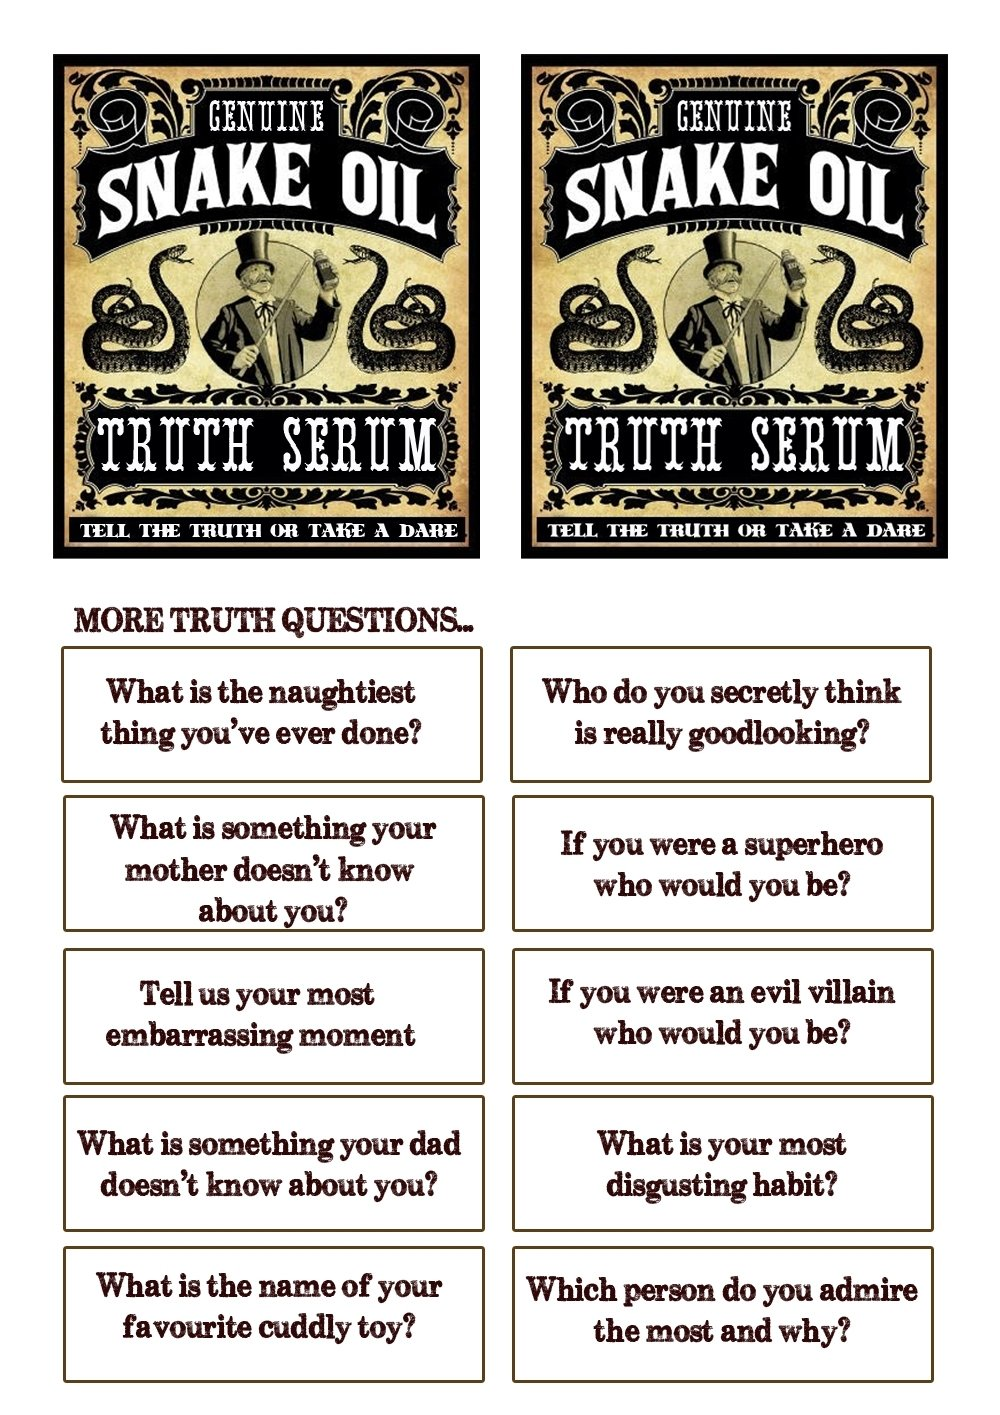 10 Ideal Dare Ideas For Truth Or Dare great fun etc family fun cowboy cookout with truth or dare 1 2020